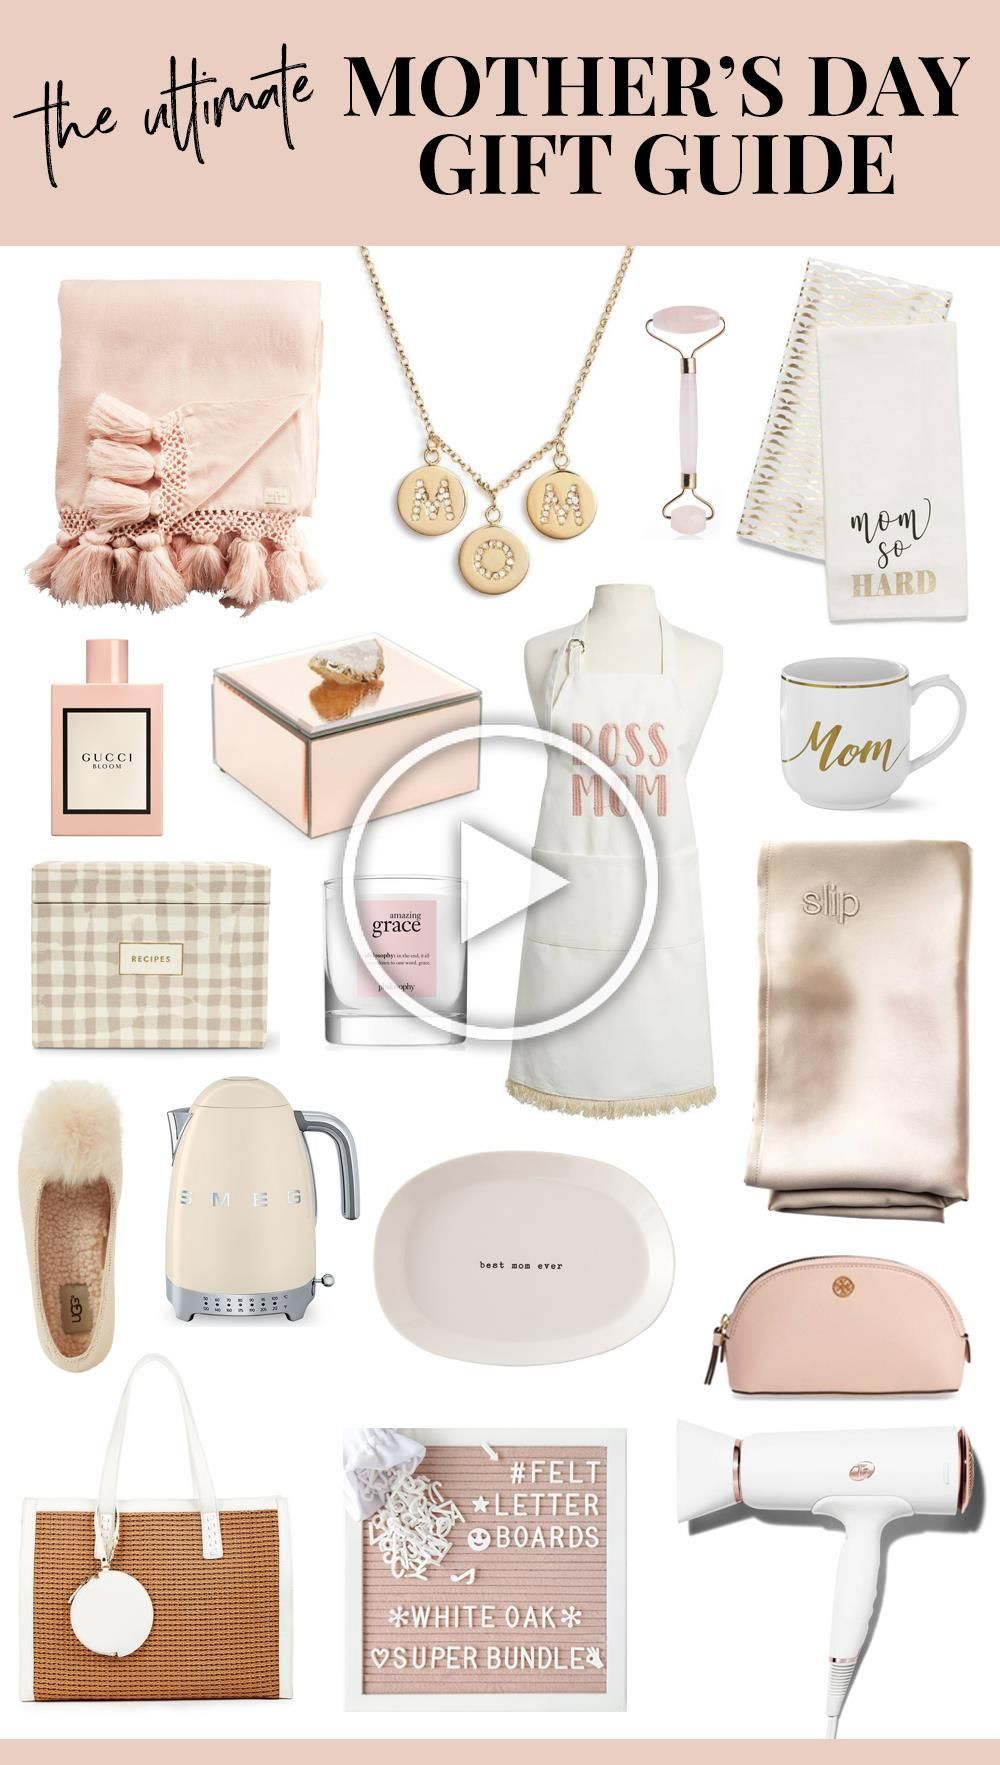 Mothers Day Gift Ideas in 2020 Gifts for aunt, Aunt